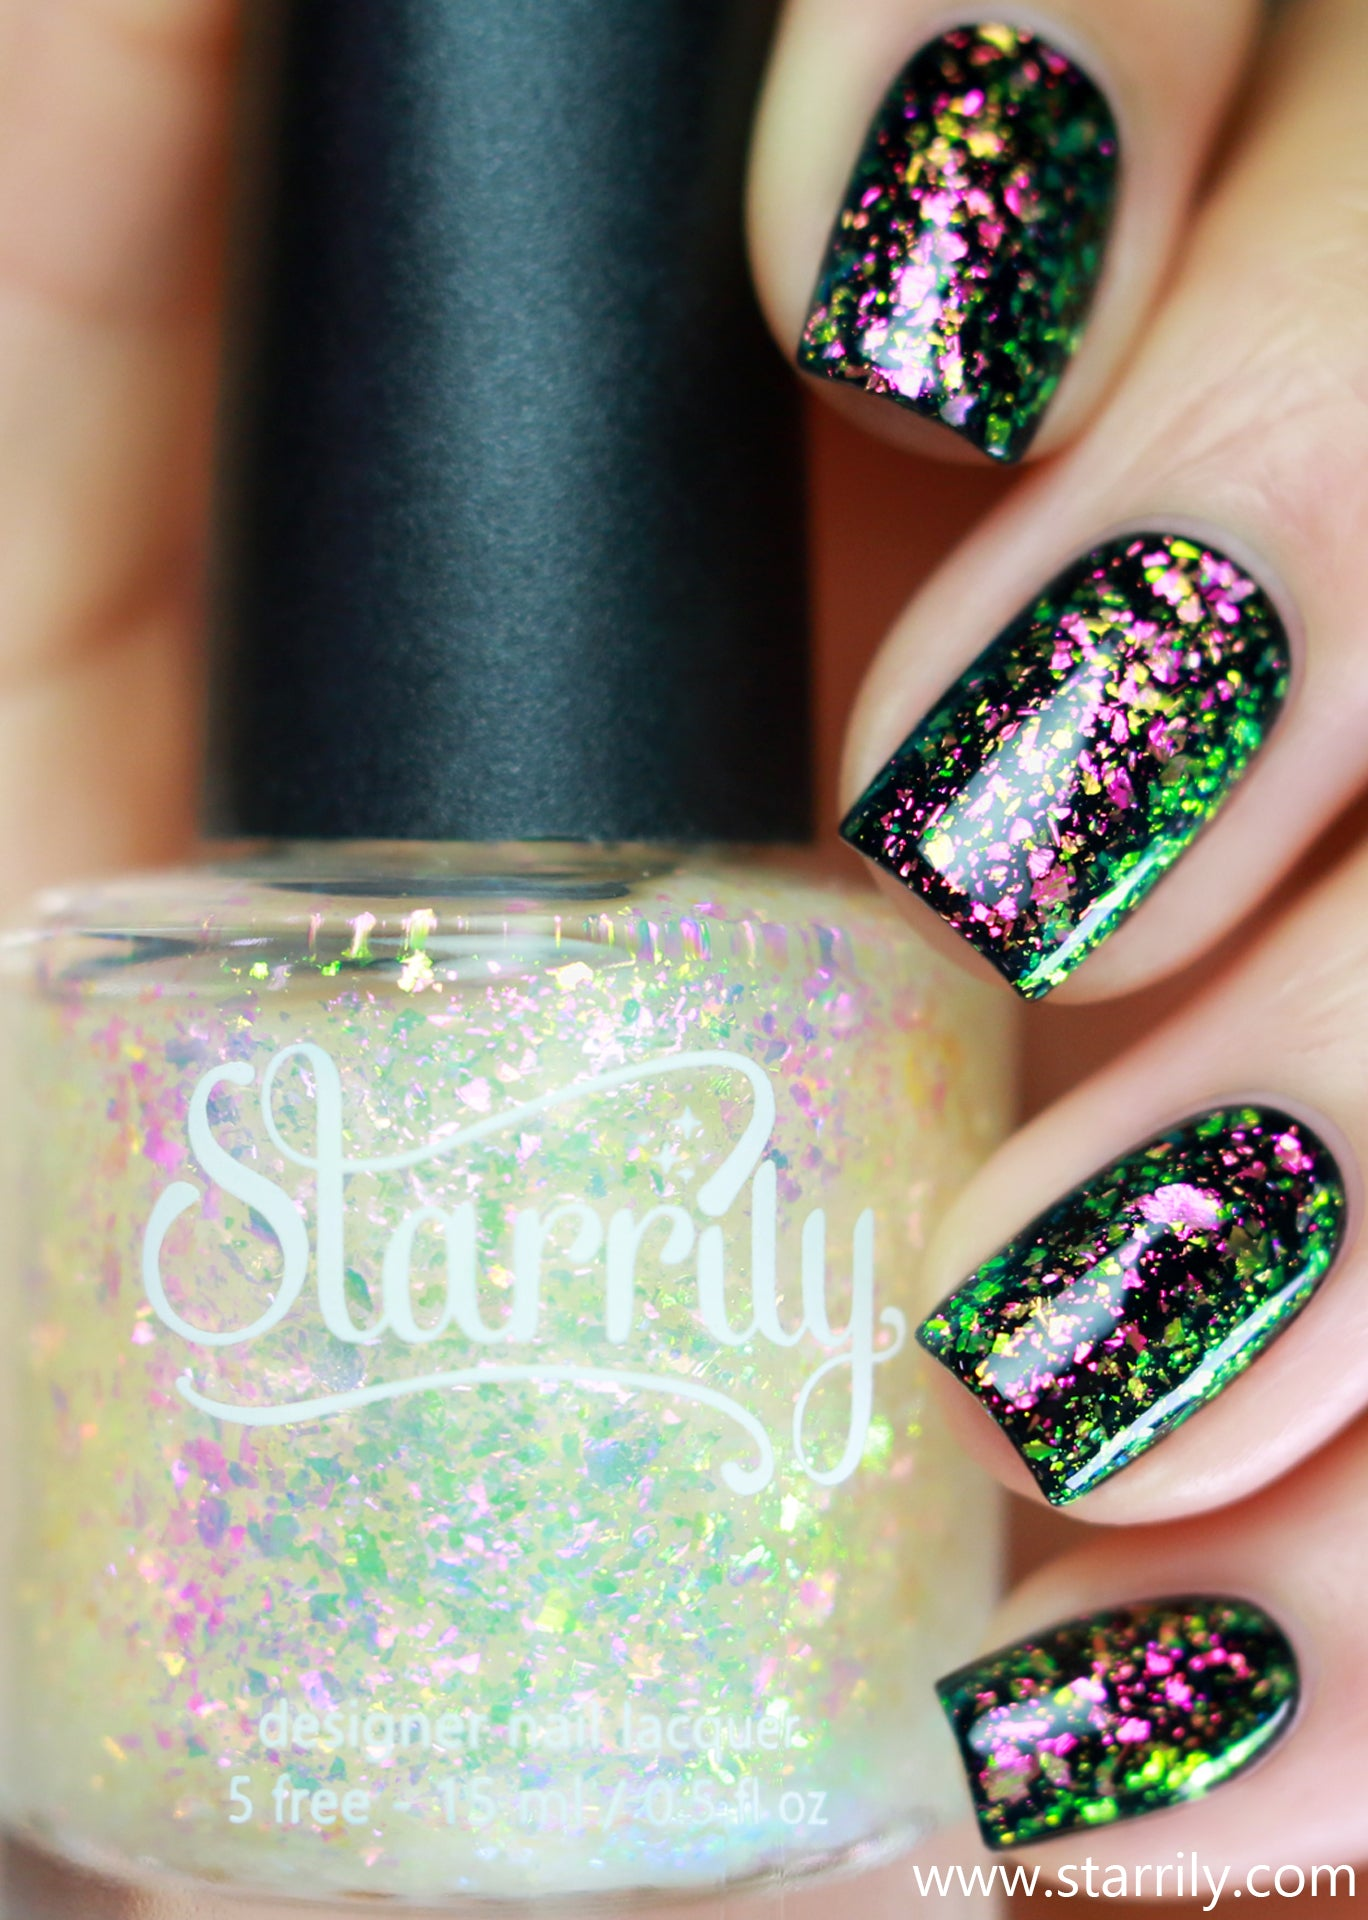 Enchanted is an enchanting colorshifting iridescent topper with magical flakes